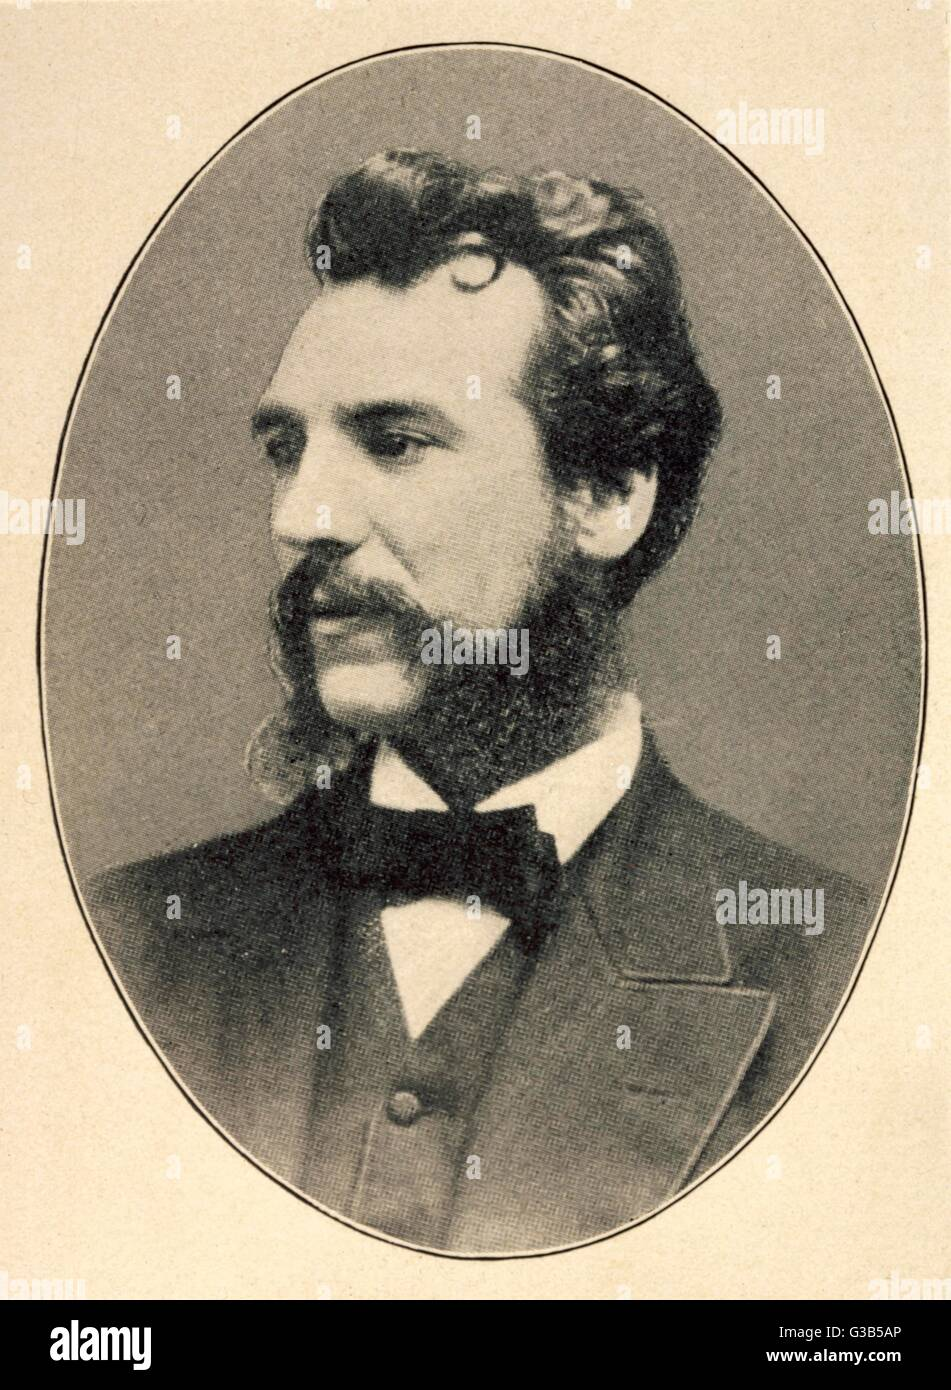 ALEXANDER GRAHAM BELL in 1876, at the age of 29 American inventor ...